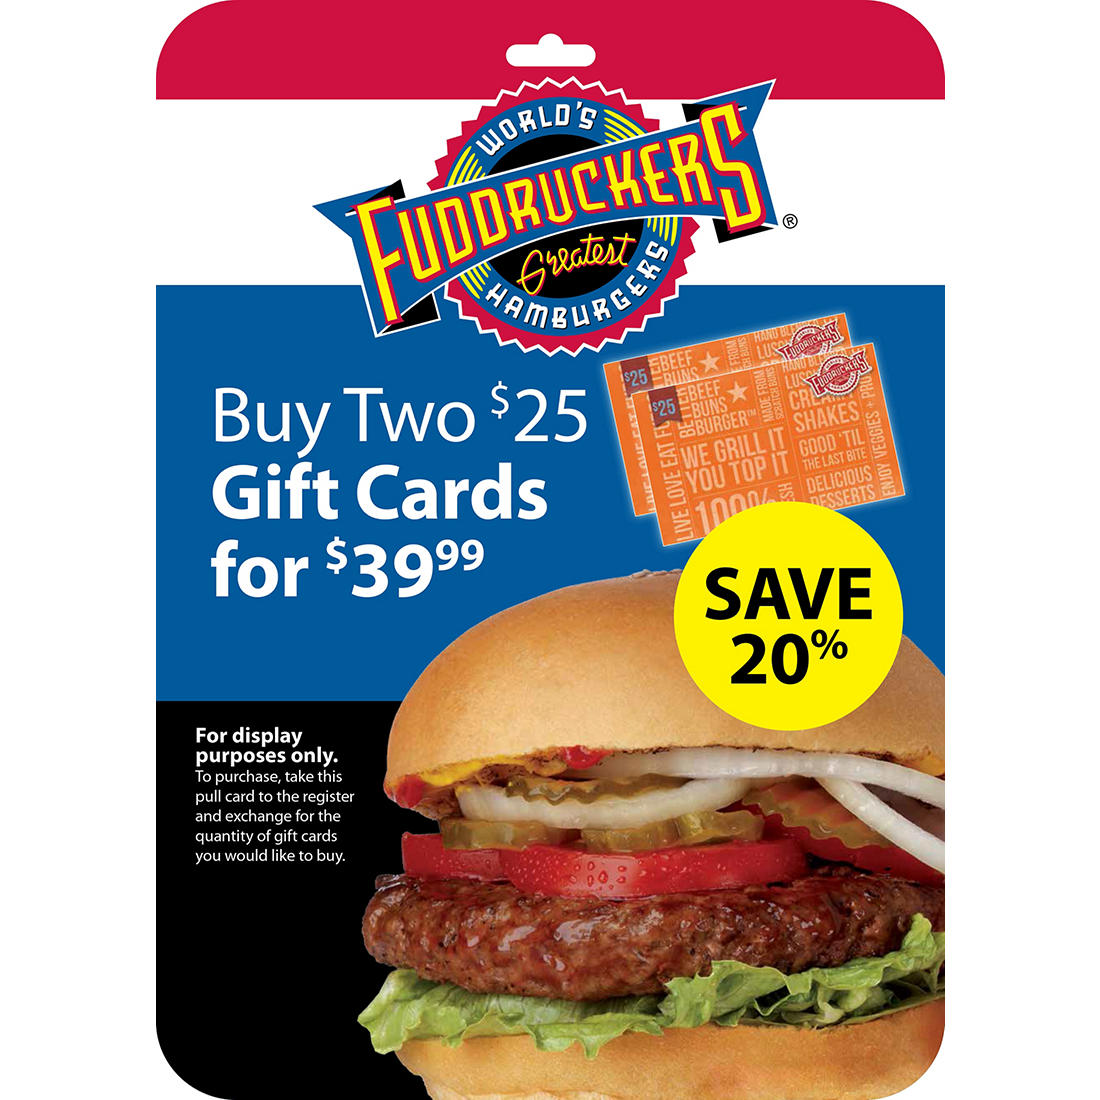 photo relating to Fuddruckers Coupons Printable called $25 Fuddruckers Reward Card, 2 pk.